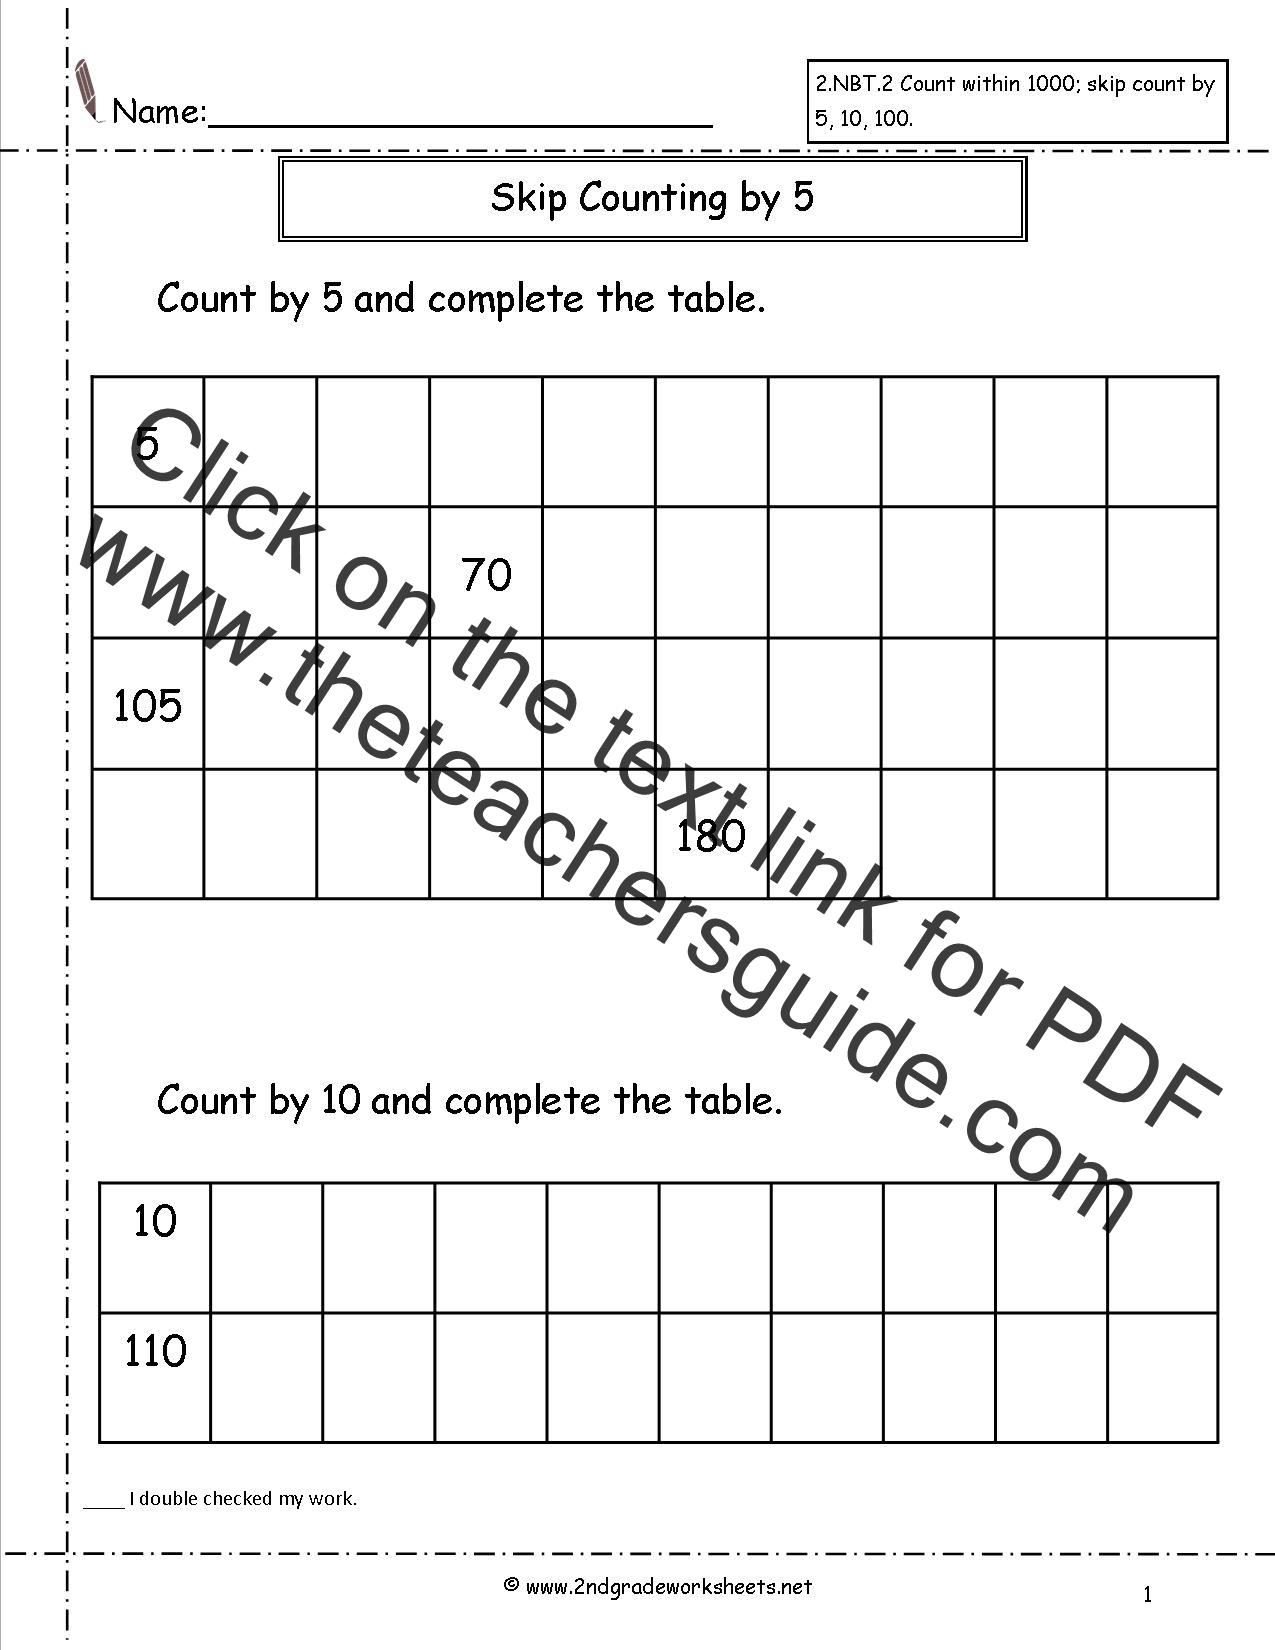 Printables Free Skip Counting Worksheets free skip counting worksheets count by 5 and 10